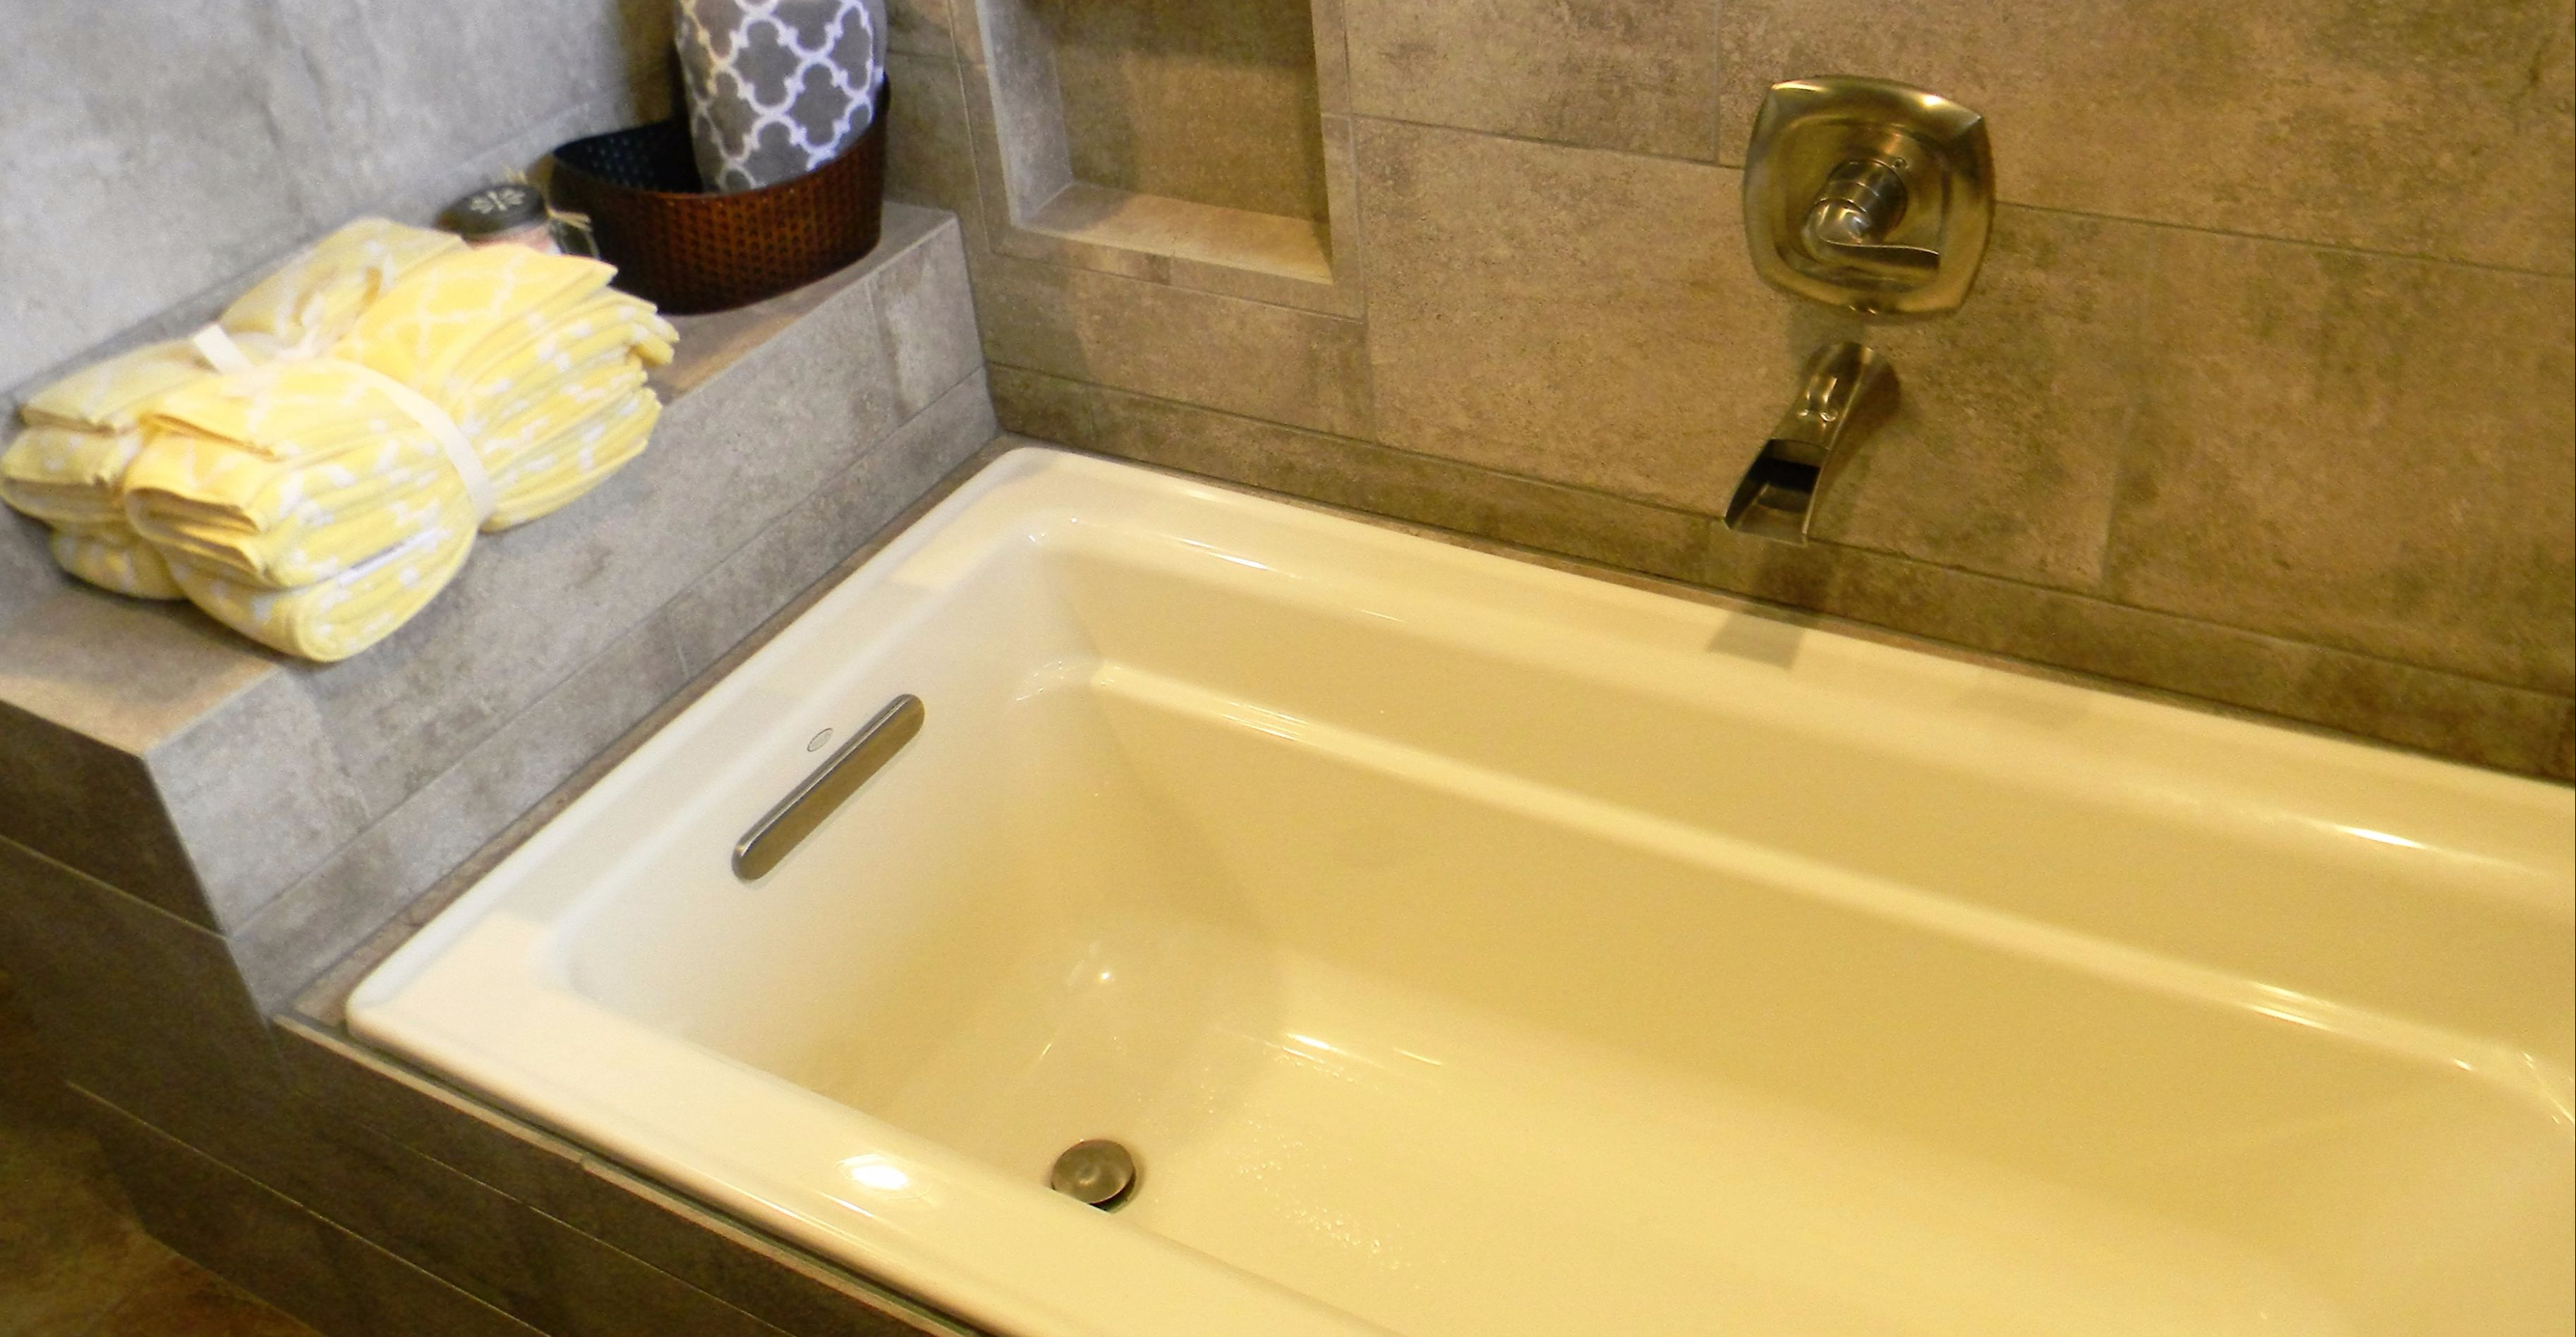 Bathroom Remodeling Contractor Newtown Pa, Bathroom Contractor Newtown Pa,  Remodeling Bathroom Newtown Pa, Shower Contractor Newtown Pa   All In One  ...